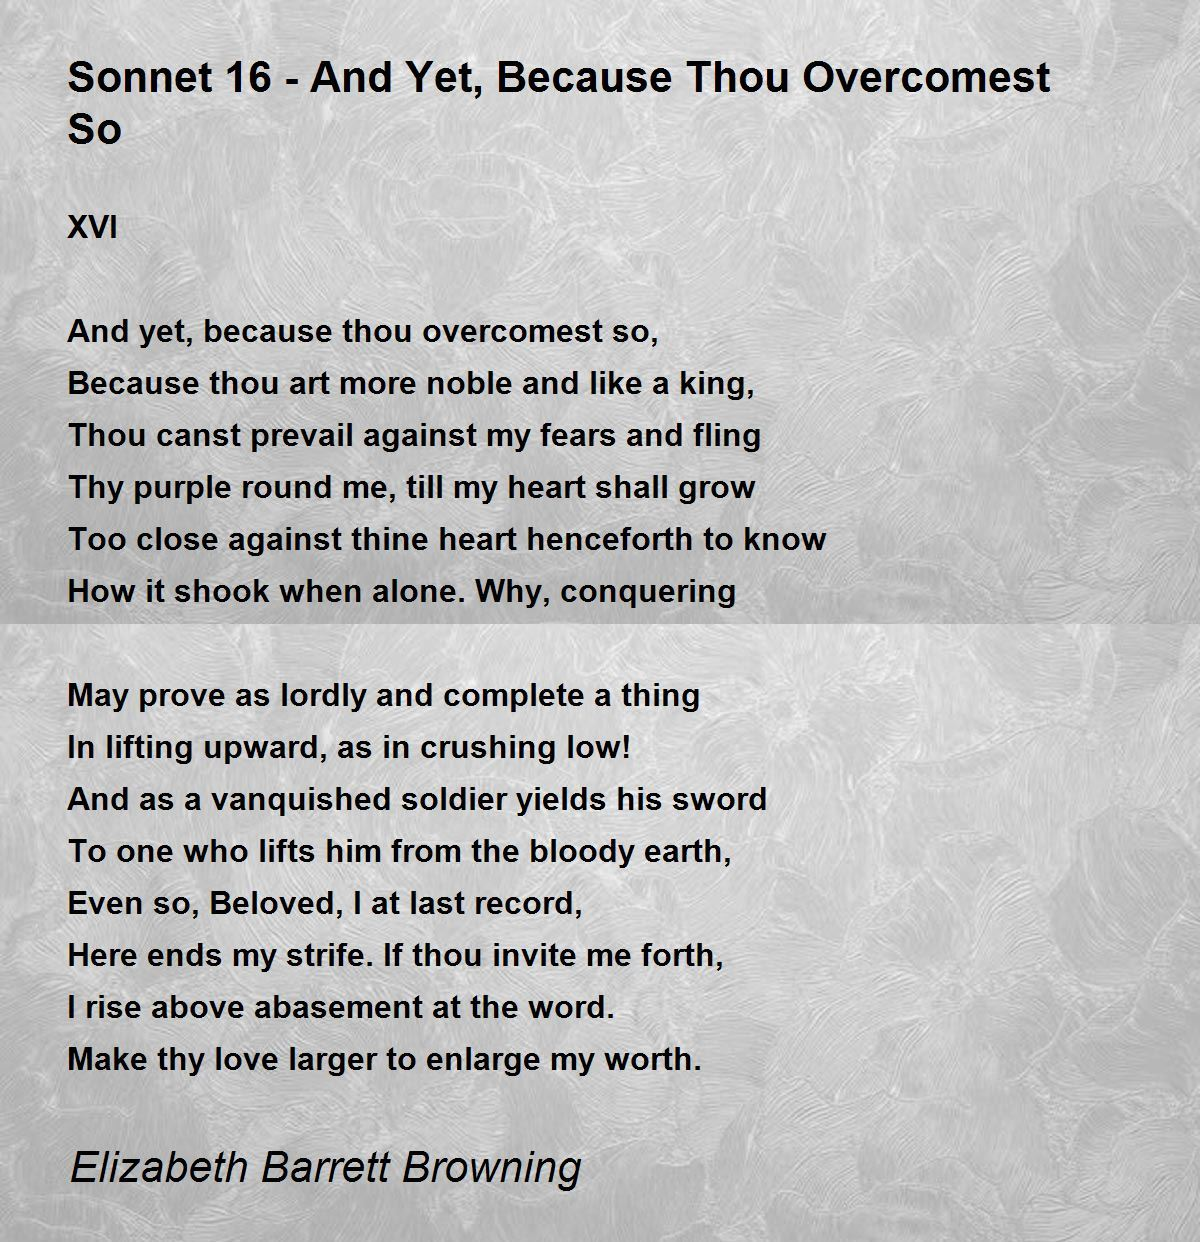 sonnet 16 analysis Read shakespeare's sonnet 16 in modern english: but why don't you use a more effective way of fighting this terrible tyrant, time and defend yourself with more effective methods than my useless poems.